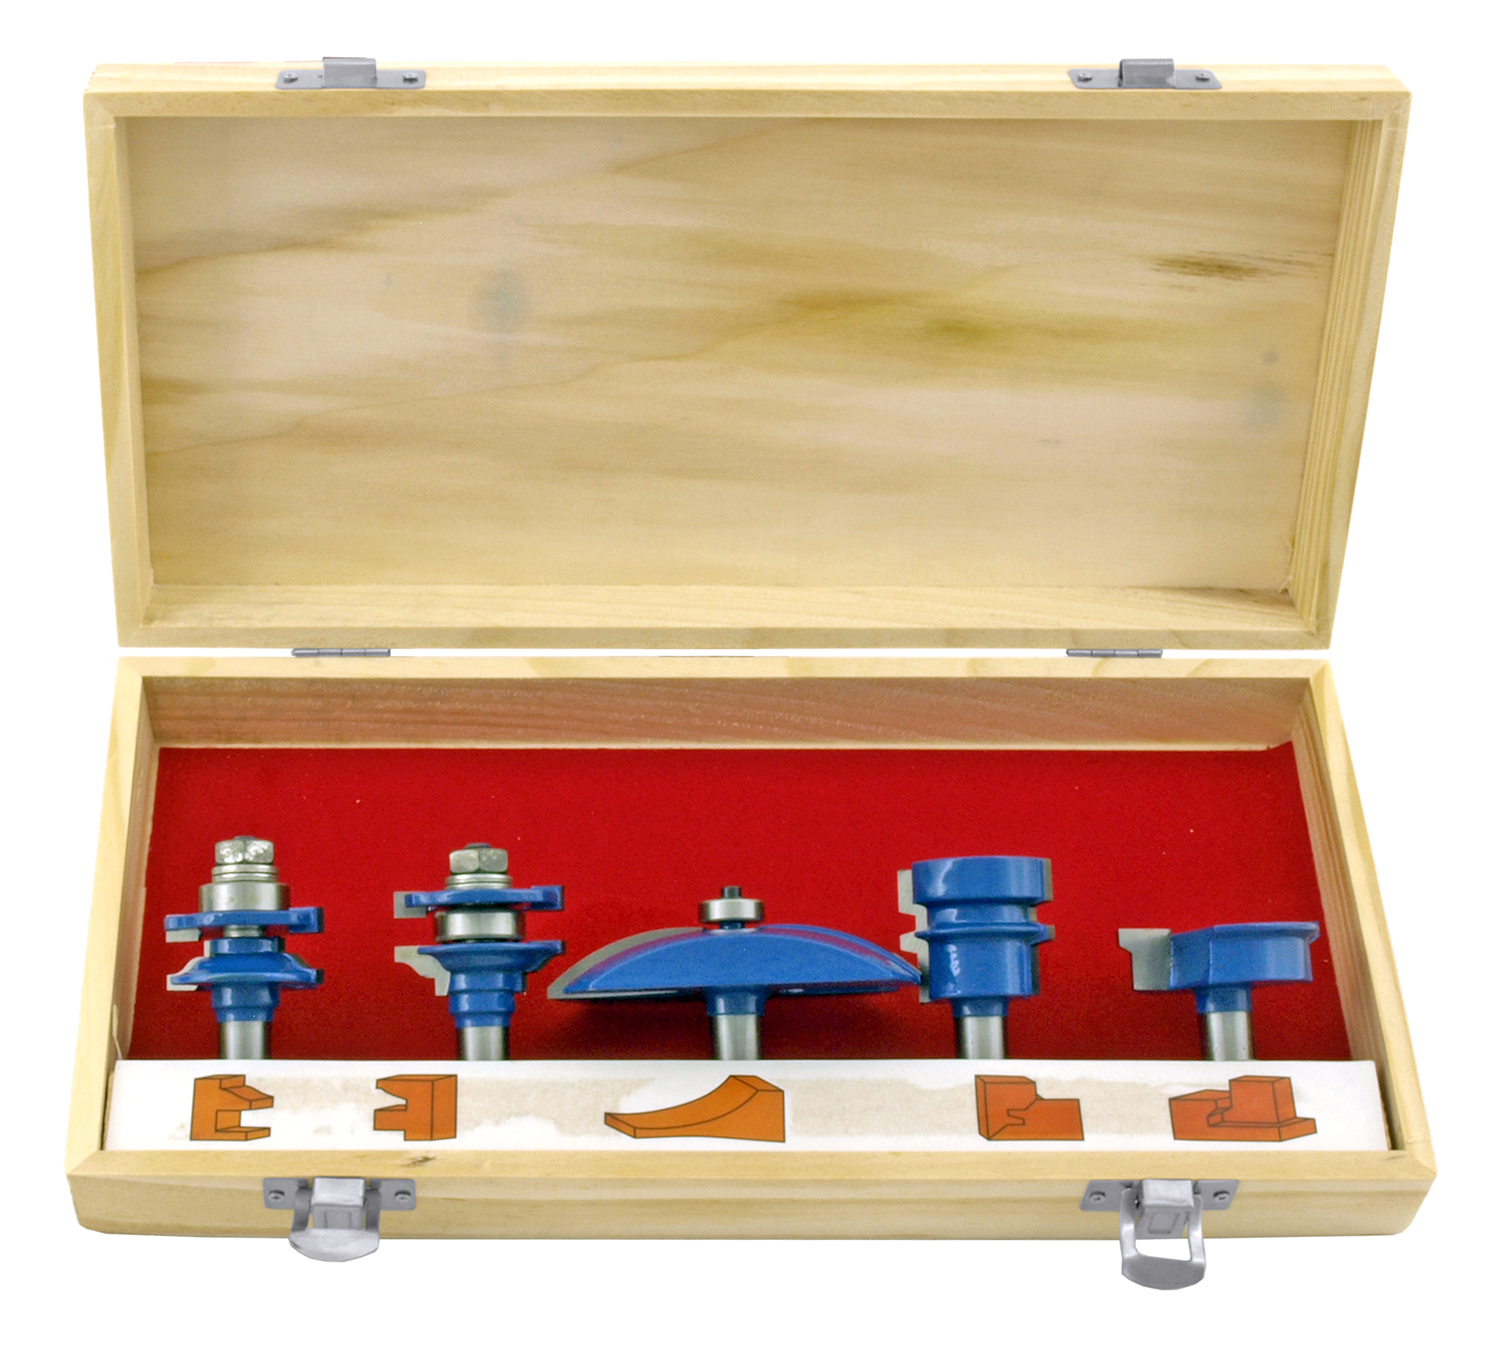 5 - pc. Industrial 1/2 in Shank OGEE Cutter Router Bit Set - Neiko Tools